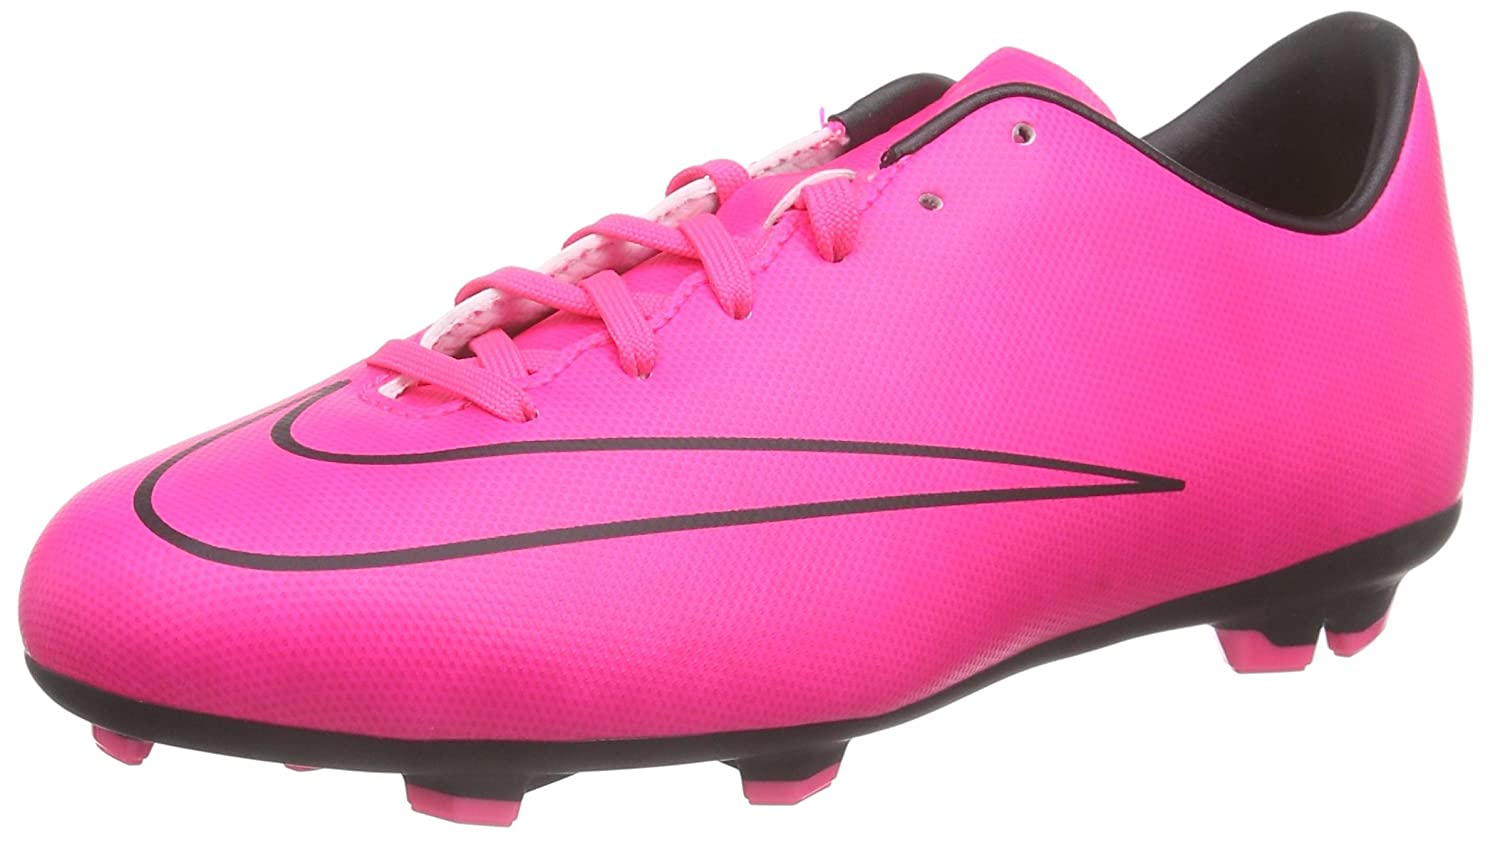 reputable site 19241 dd5d2 Nike Mercurial Victory V FG Junior Soccer Boots